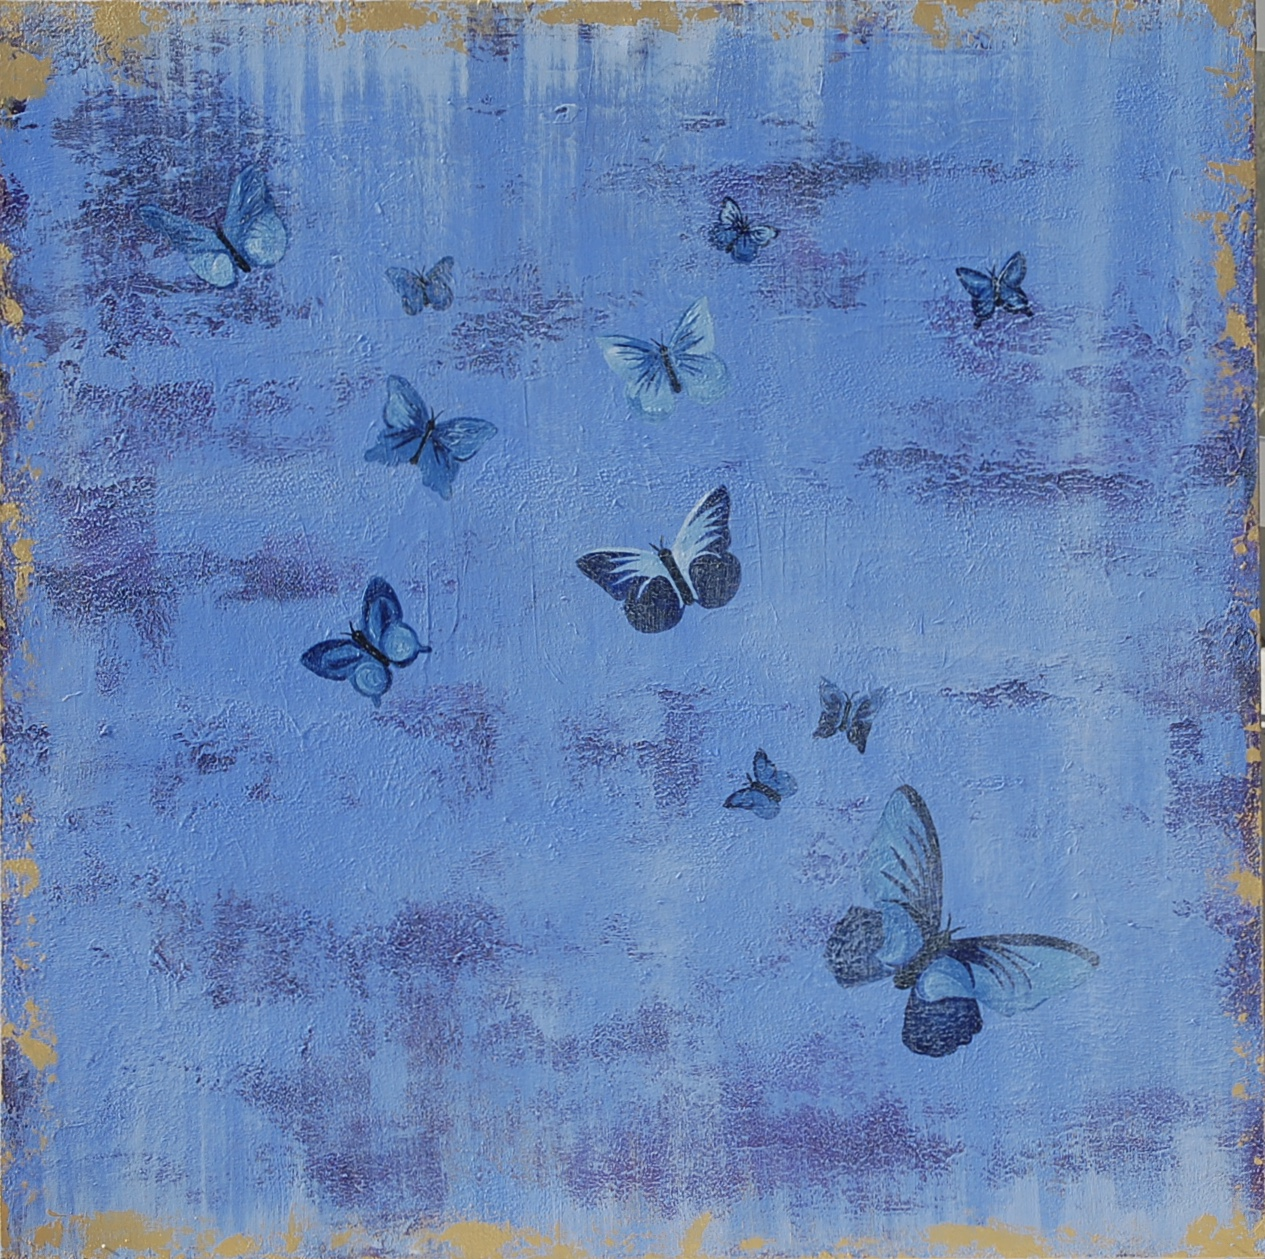 Voyage dans in Reve Journey into a Dream artwork by Renee Guercia - art listed for sale on Artplode